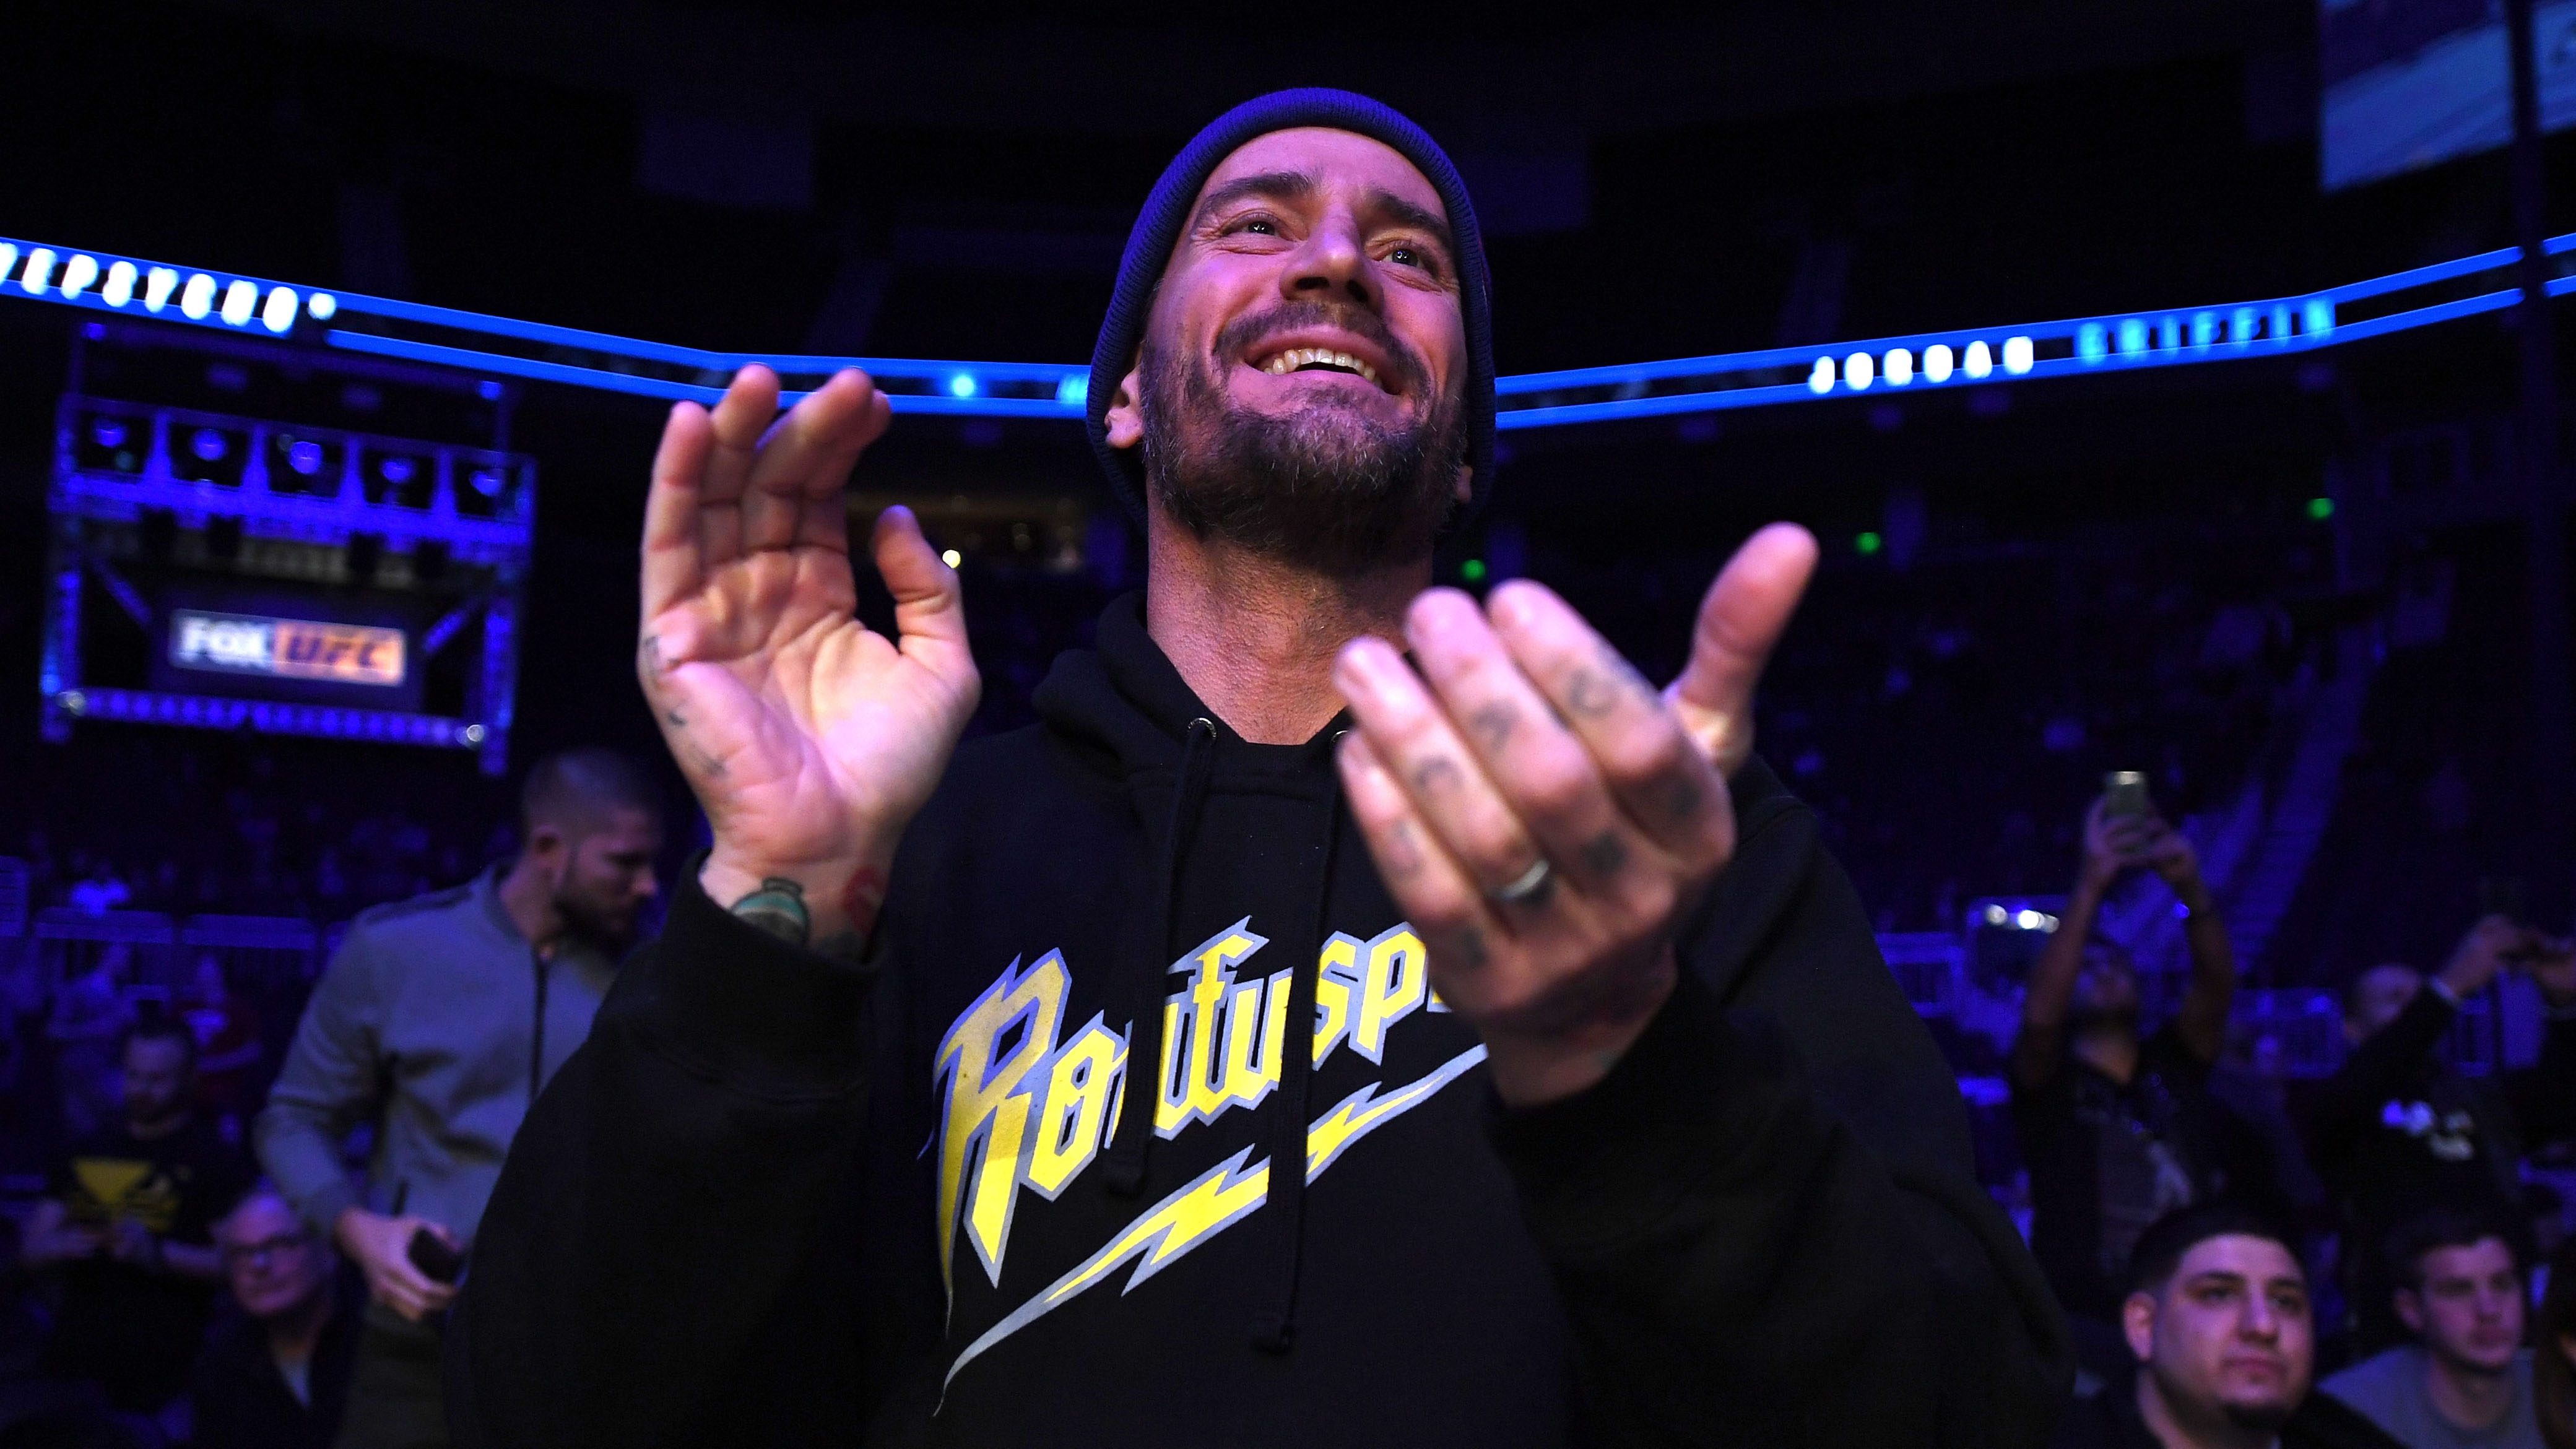 CM Punk auditions for return to WWE on Fox's 'Backstage'